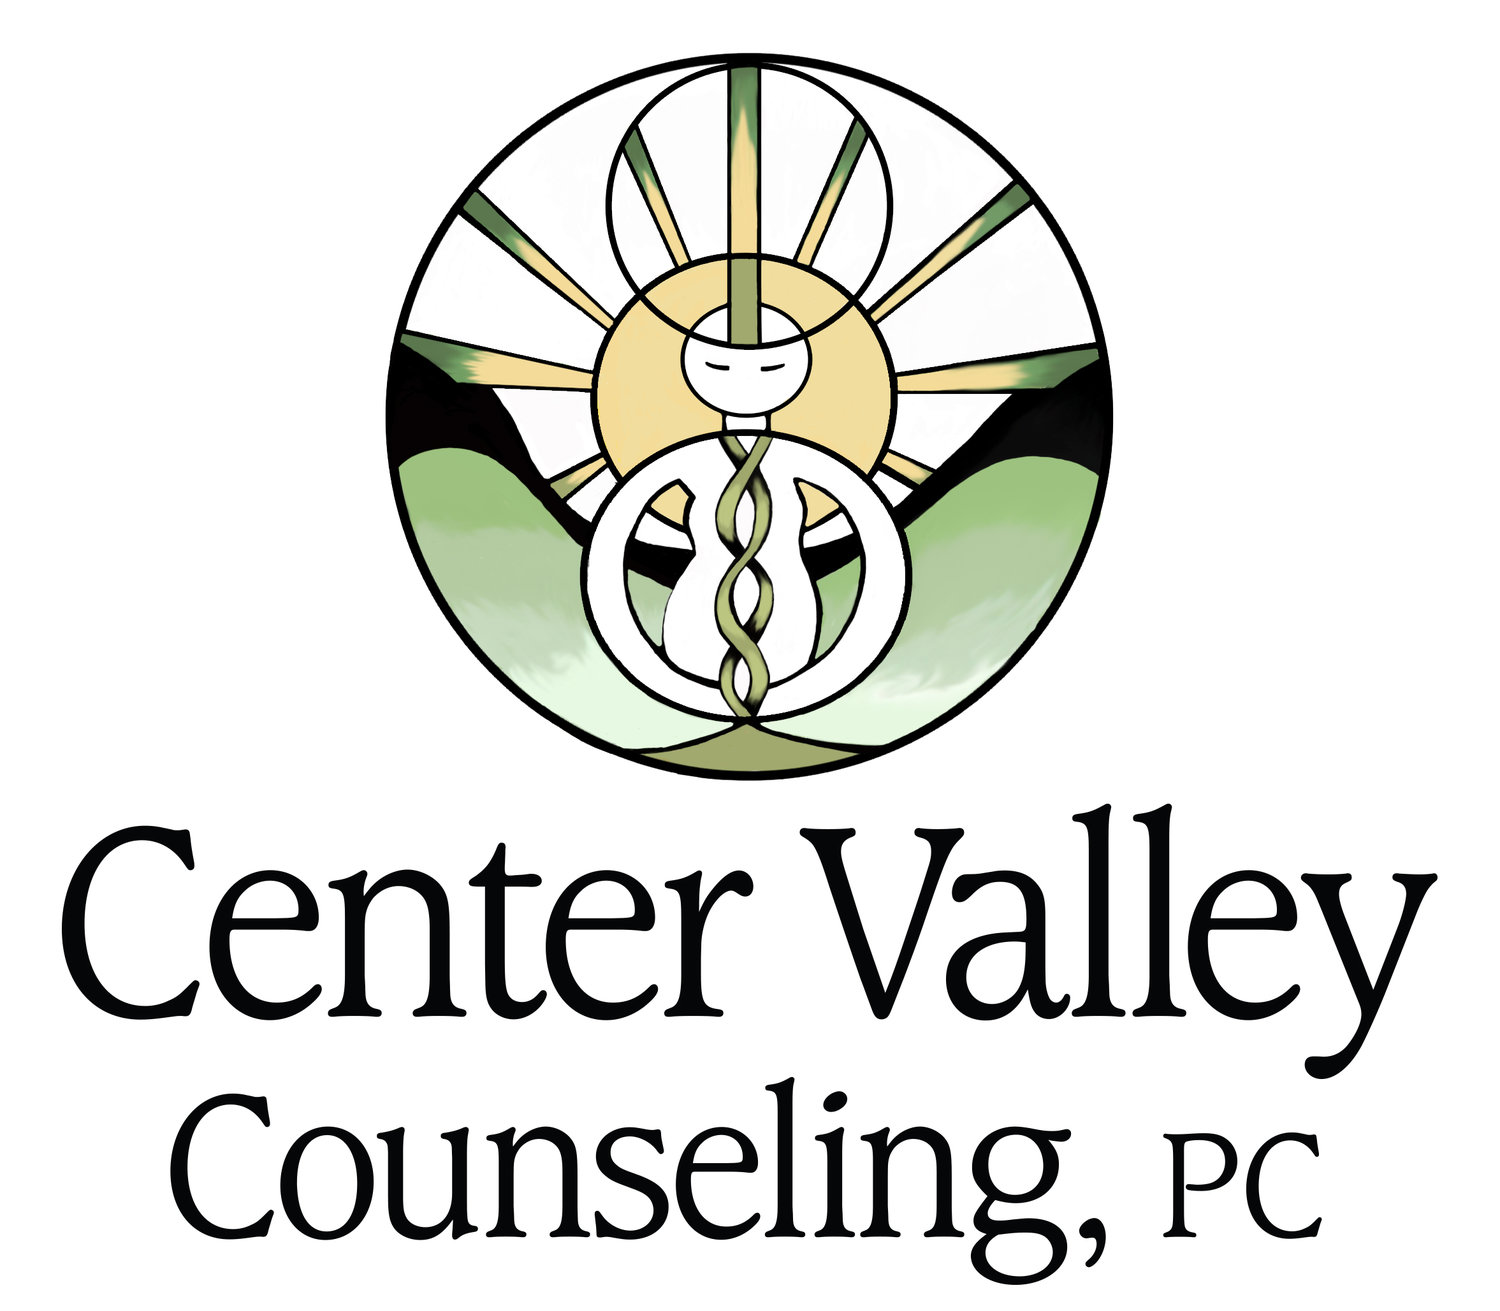 Center Valley Counseling, Inc.